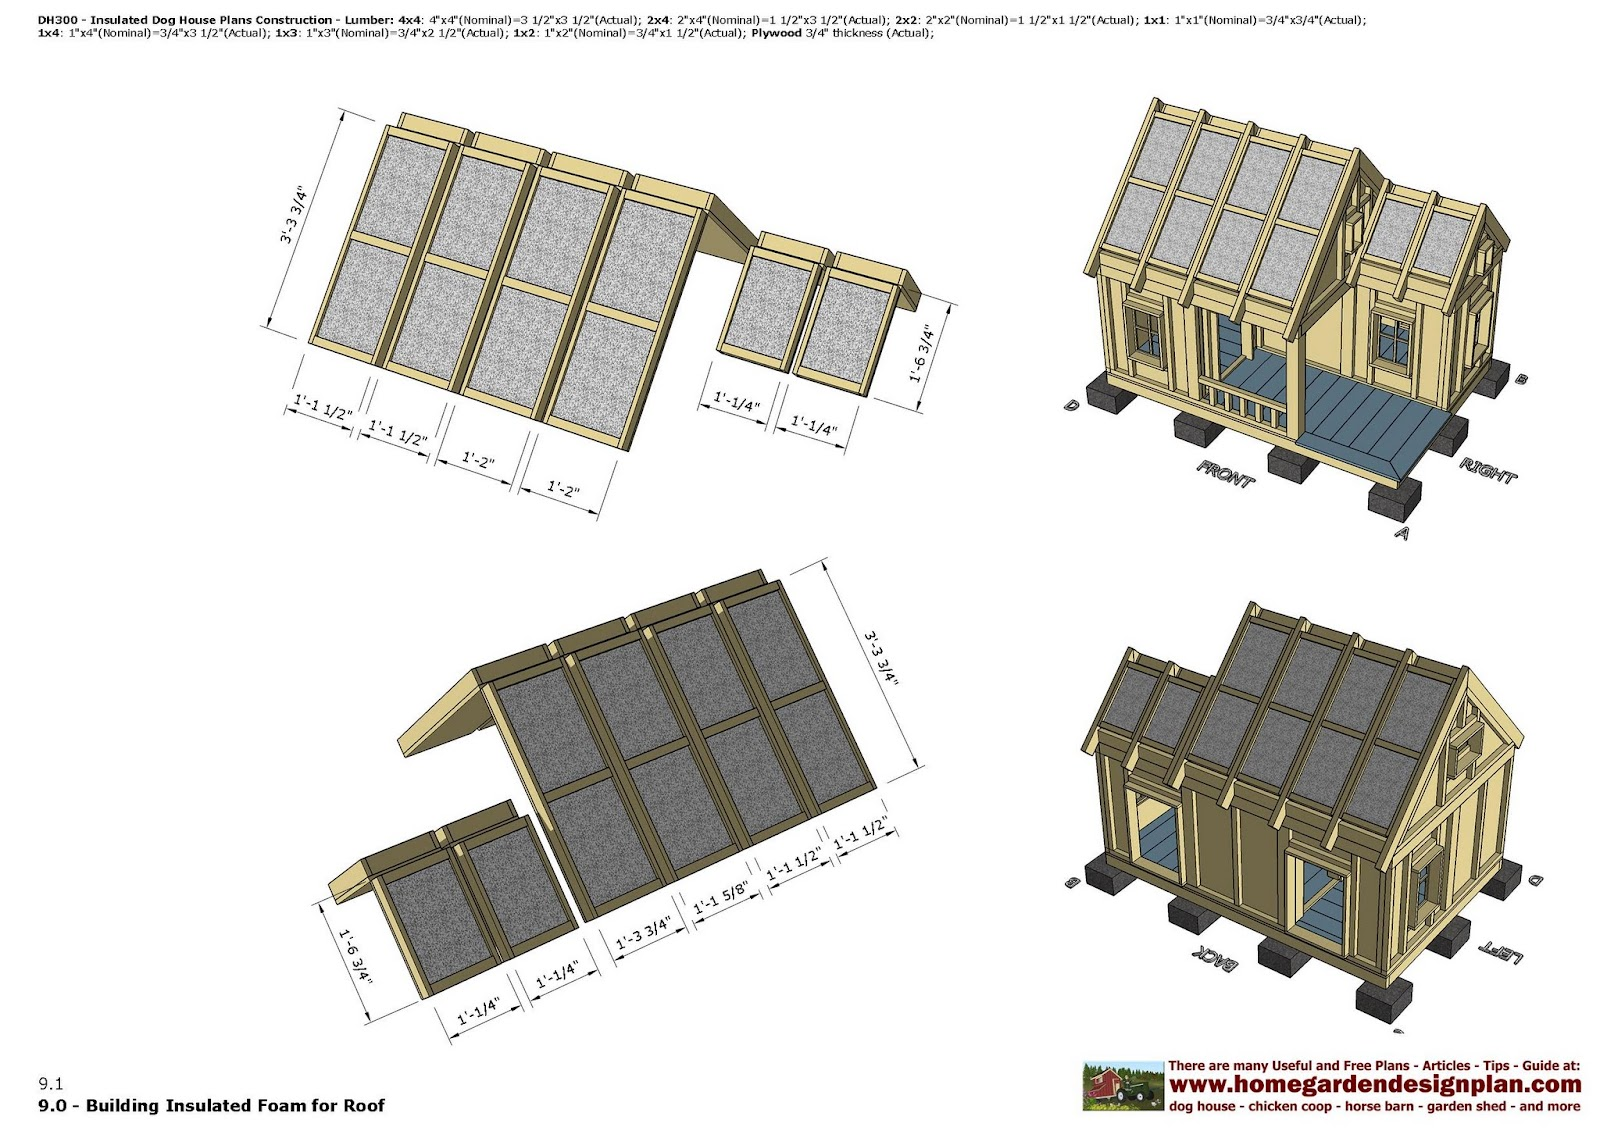 Insulated dog house plans construction how to build an insulated dog